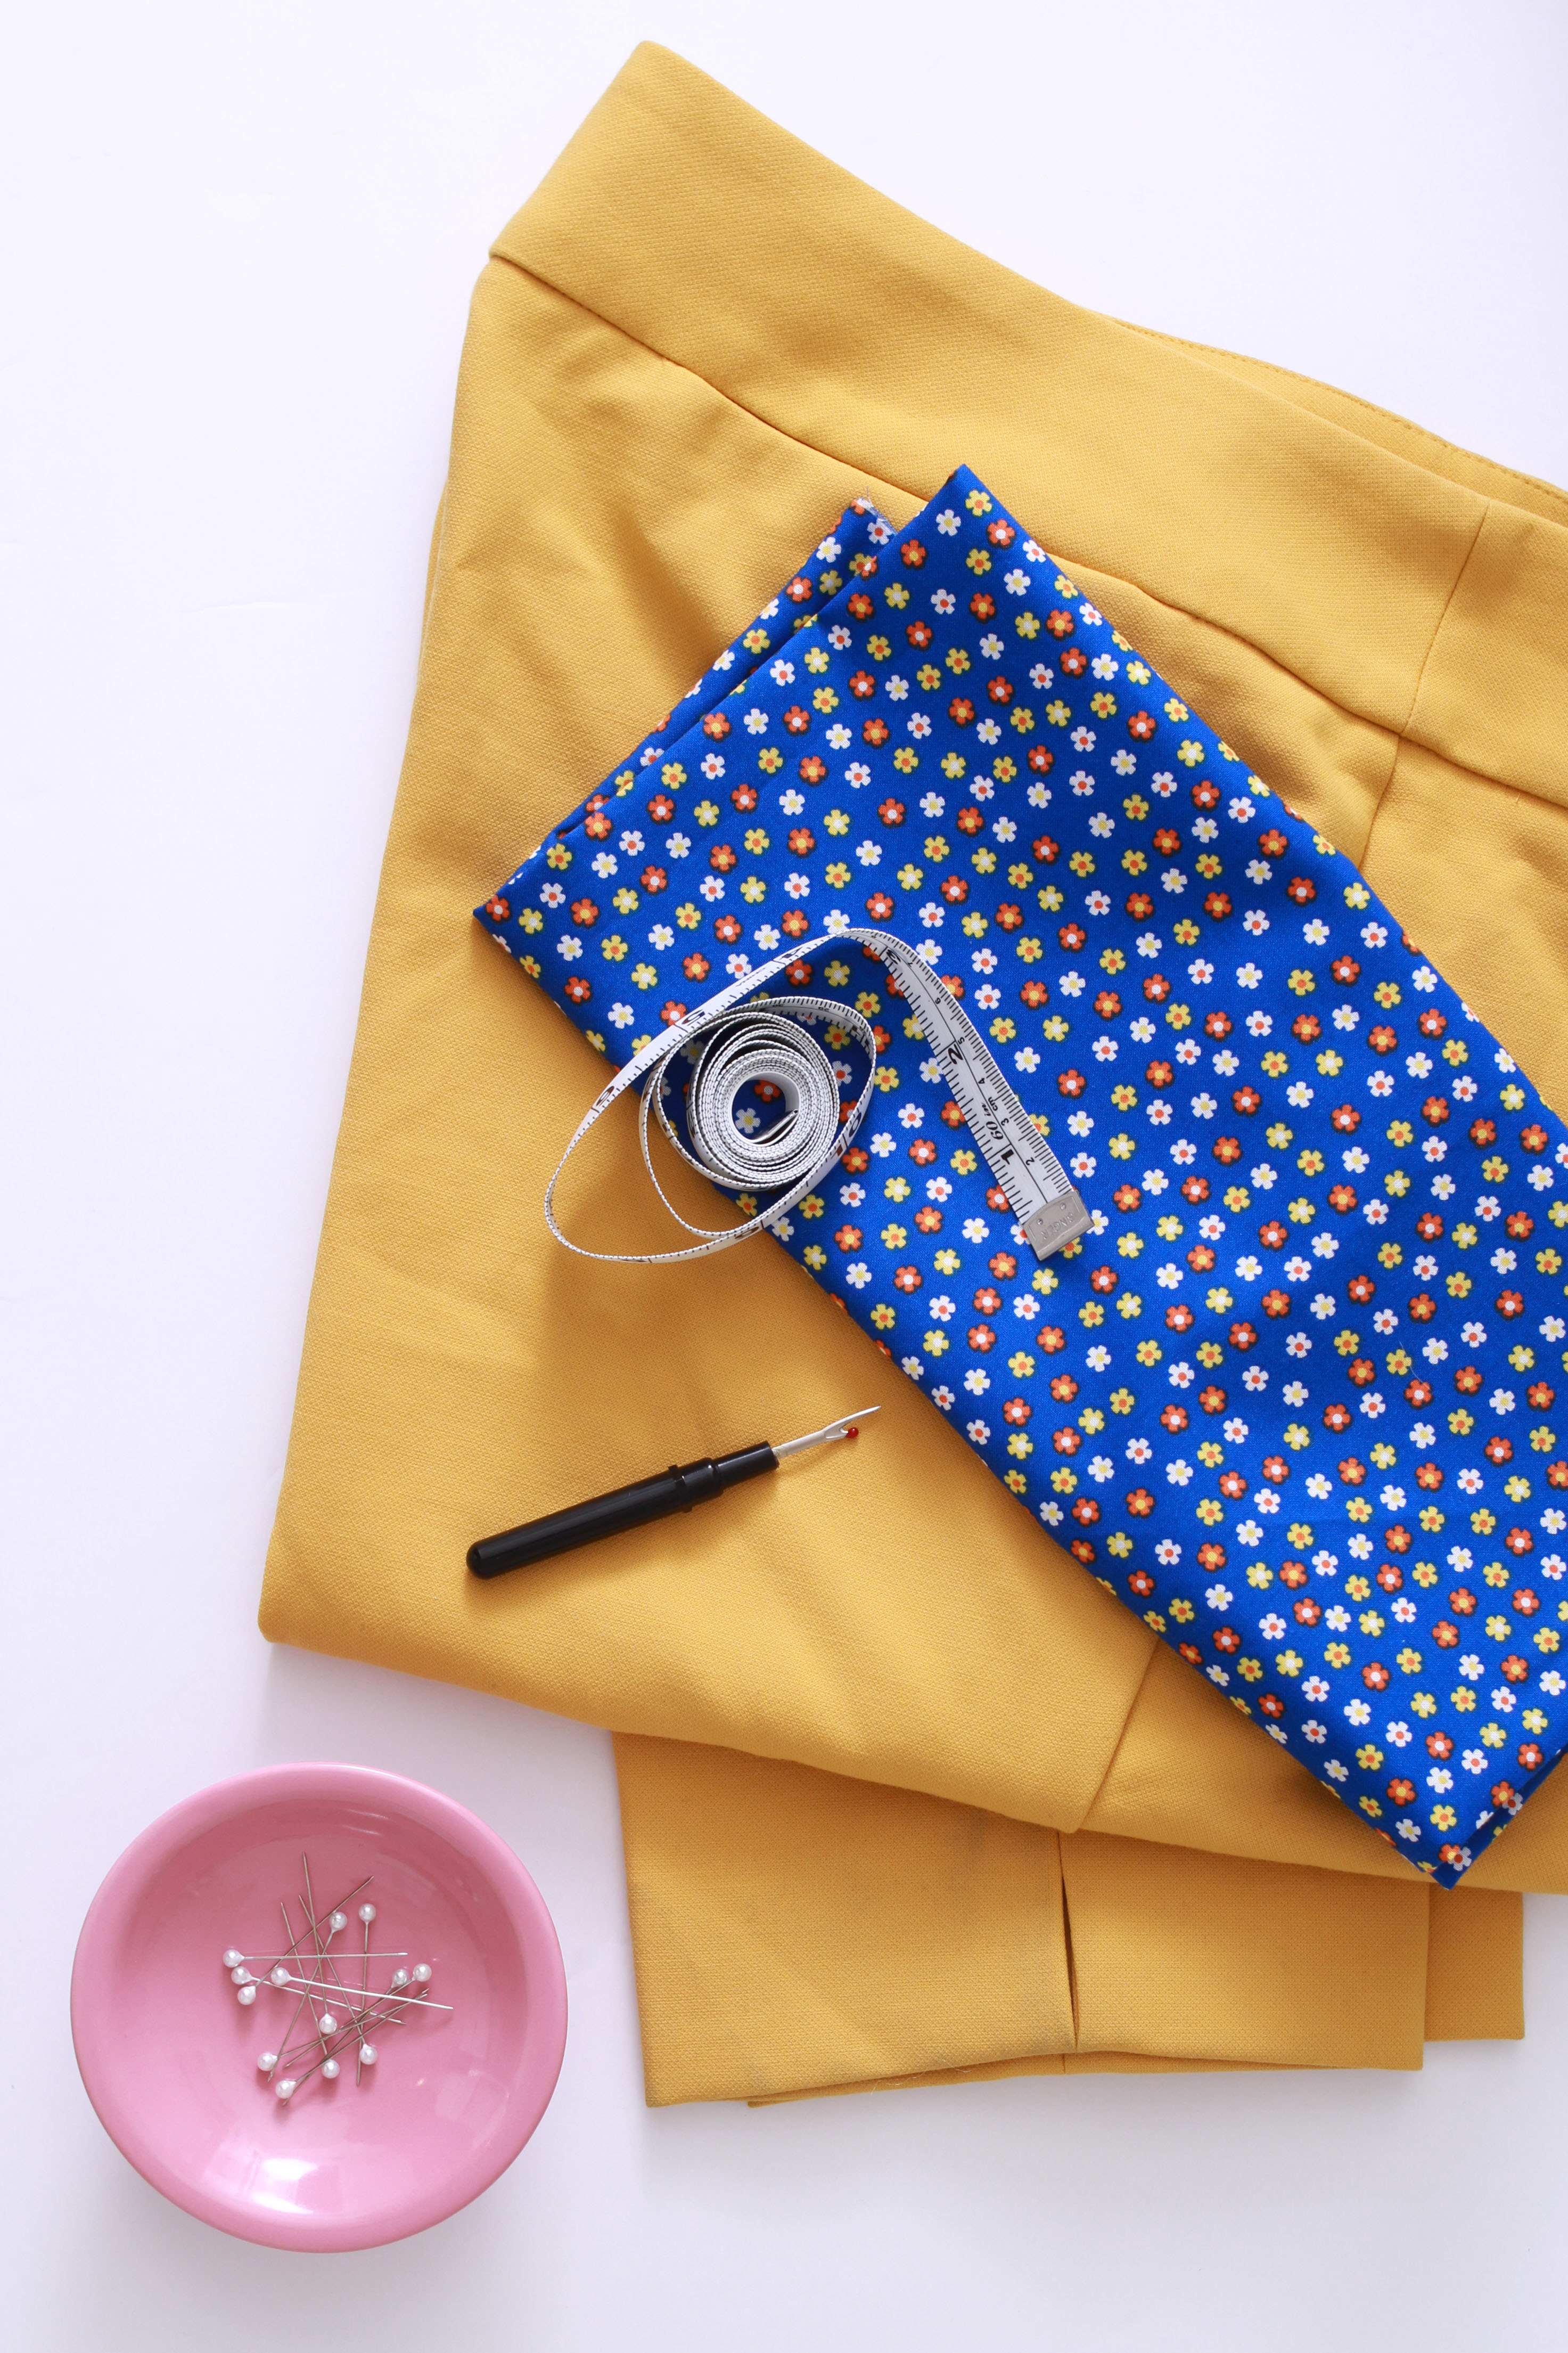 materials for sewing pockets